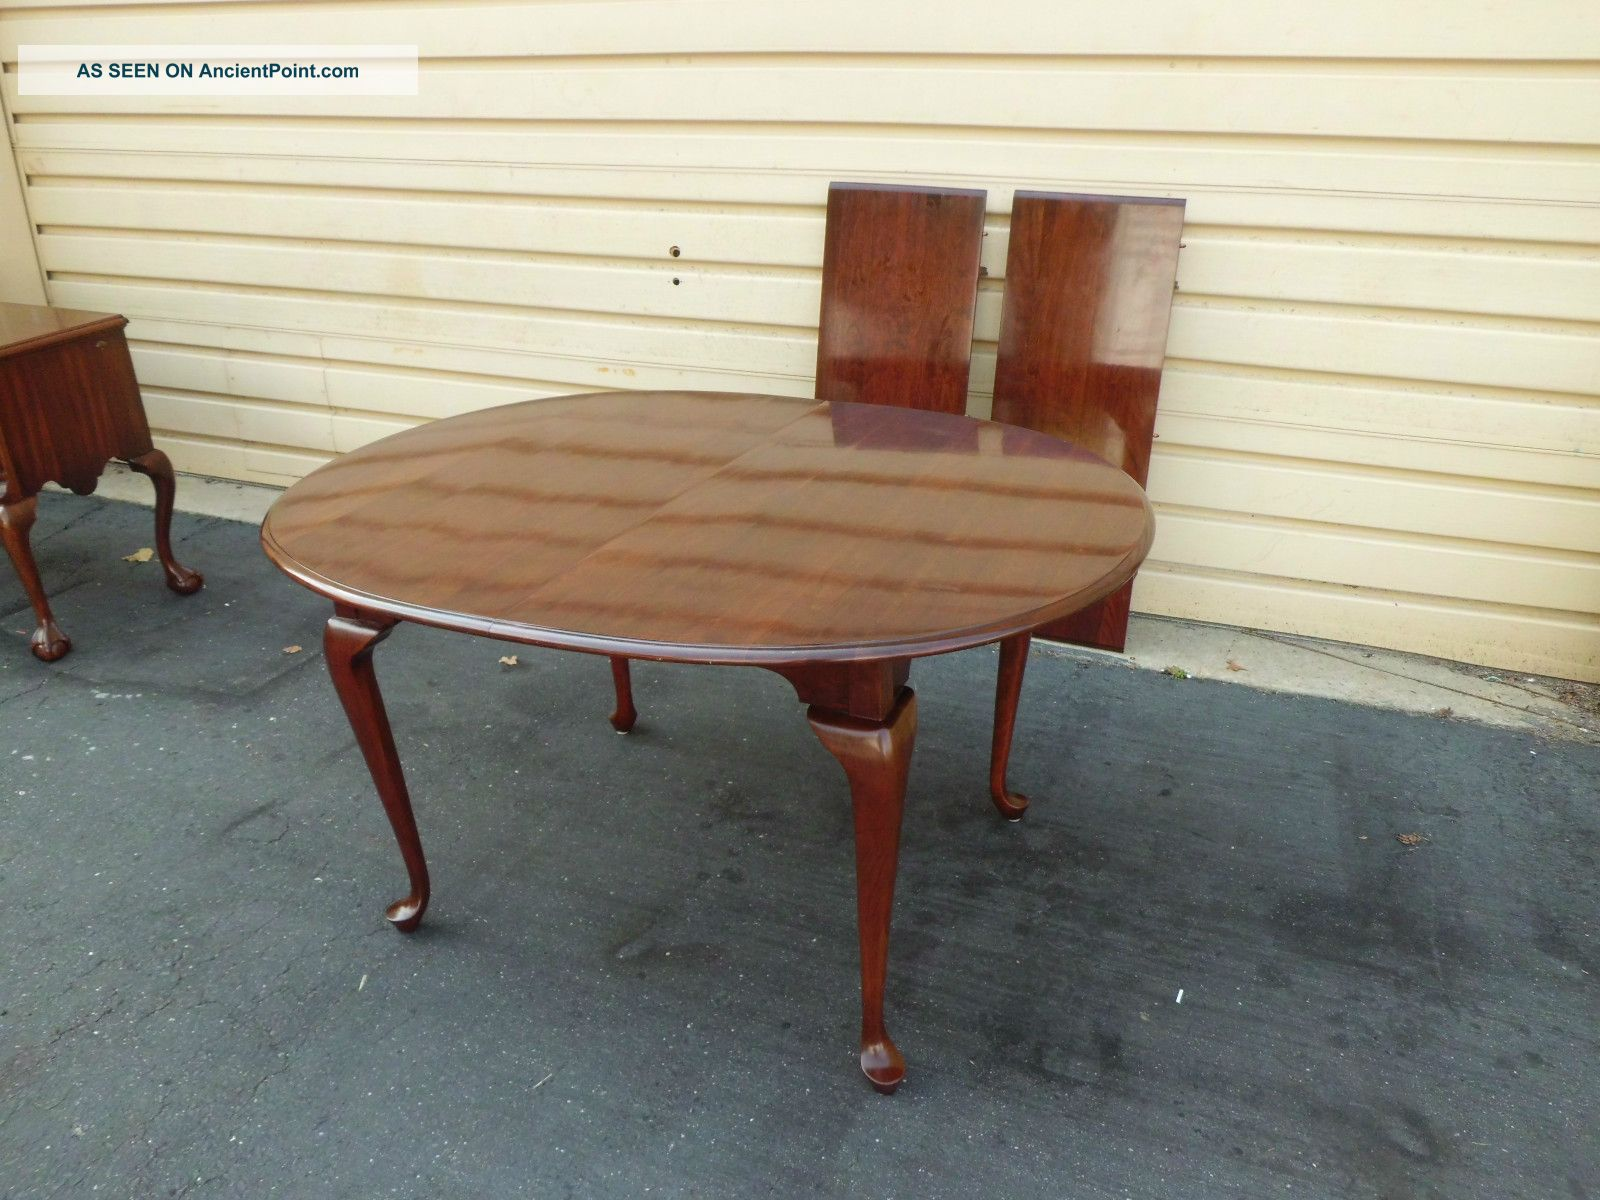 http://ancientpoint.com/imgs/a/e/j/d/g/50784_solid_cherry_pennsylvania_house_dining_room_table_with_2_leafs_1_lgw.jpg